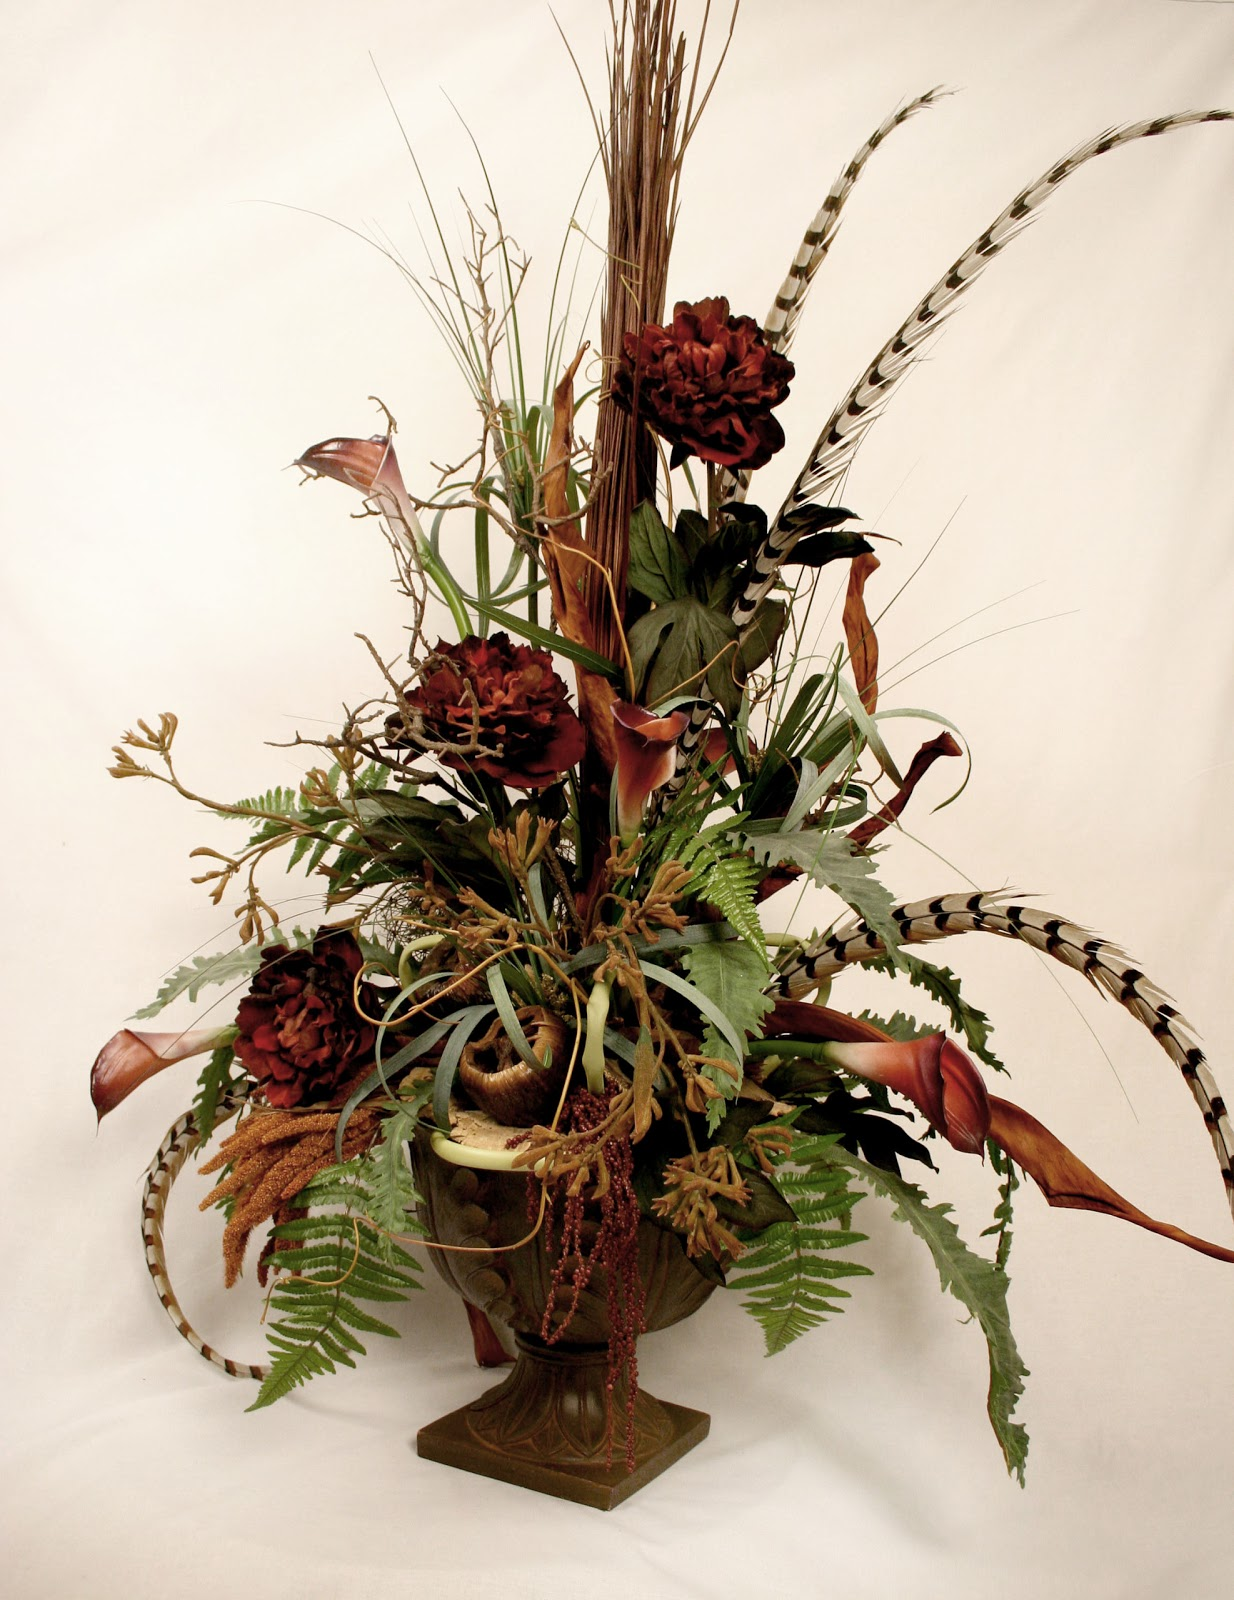 Ana silk flowers silk flower arrangement styles and different shapes - Best dried flower arrangements a colorful winter ...